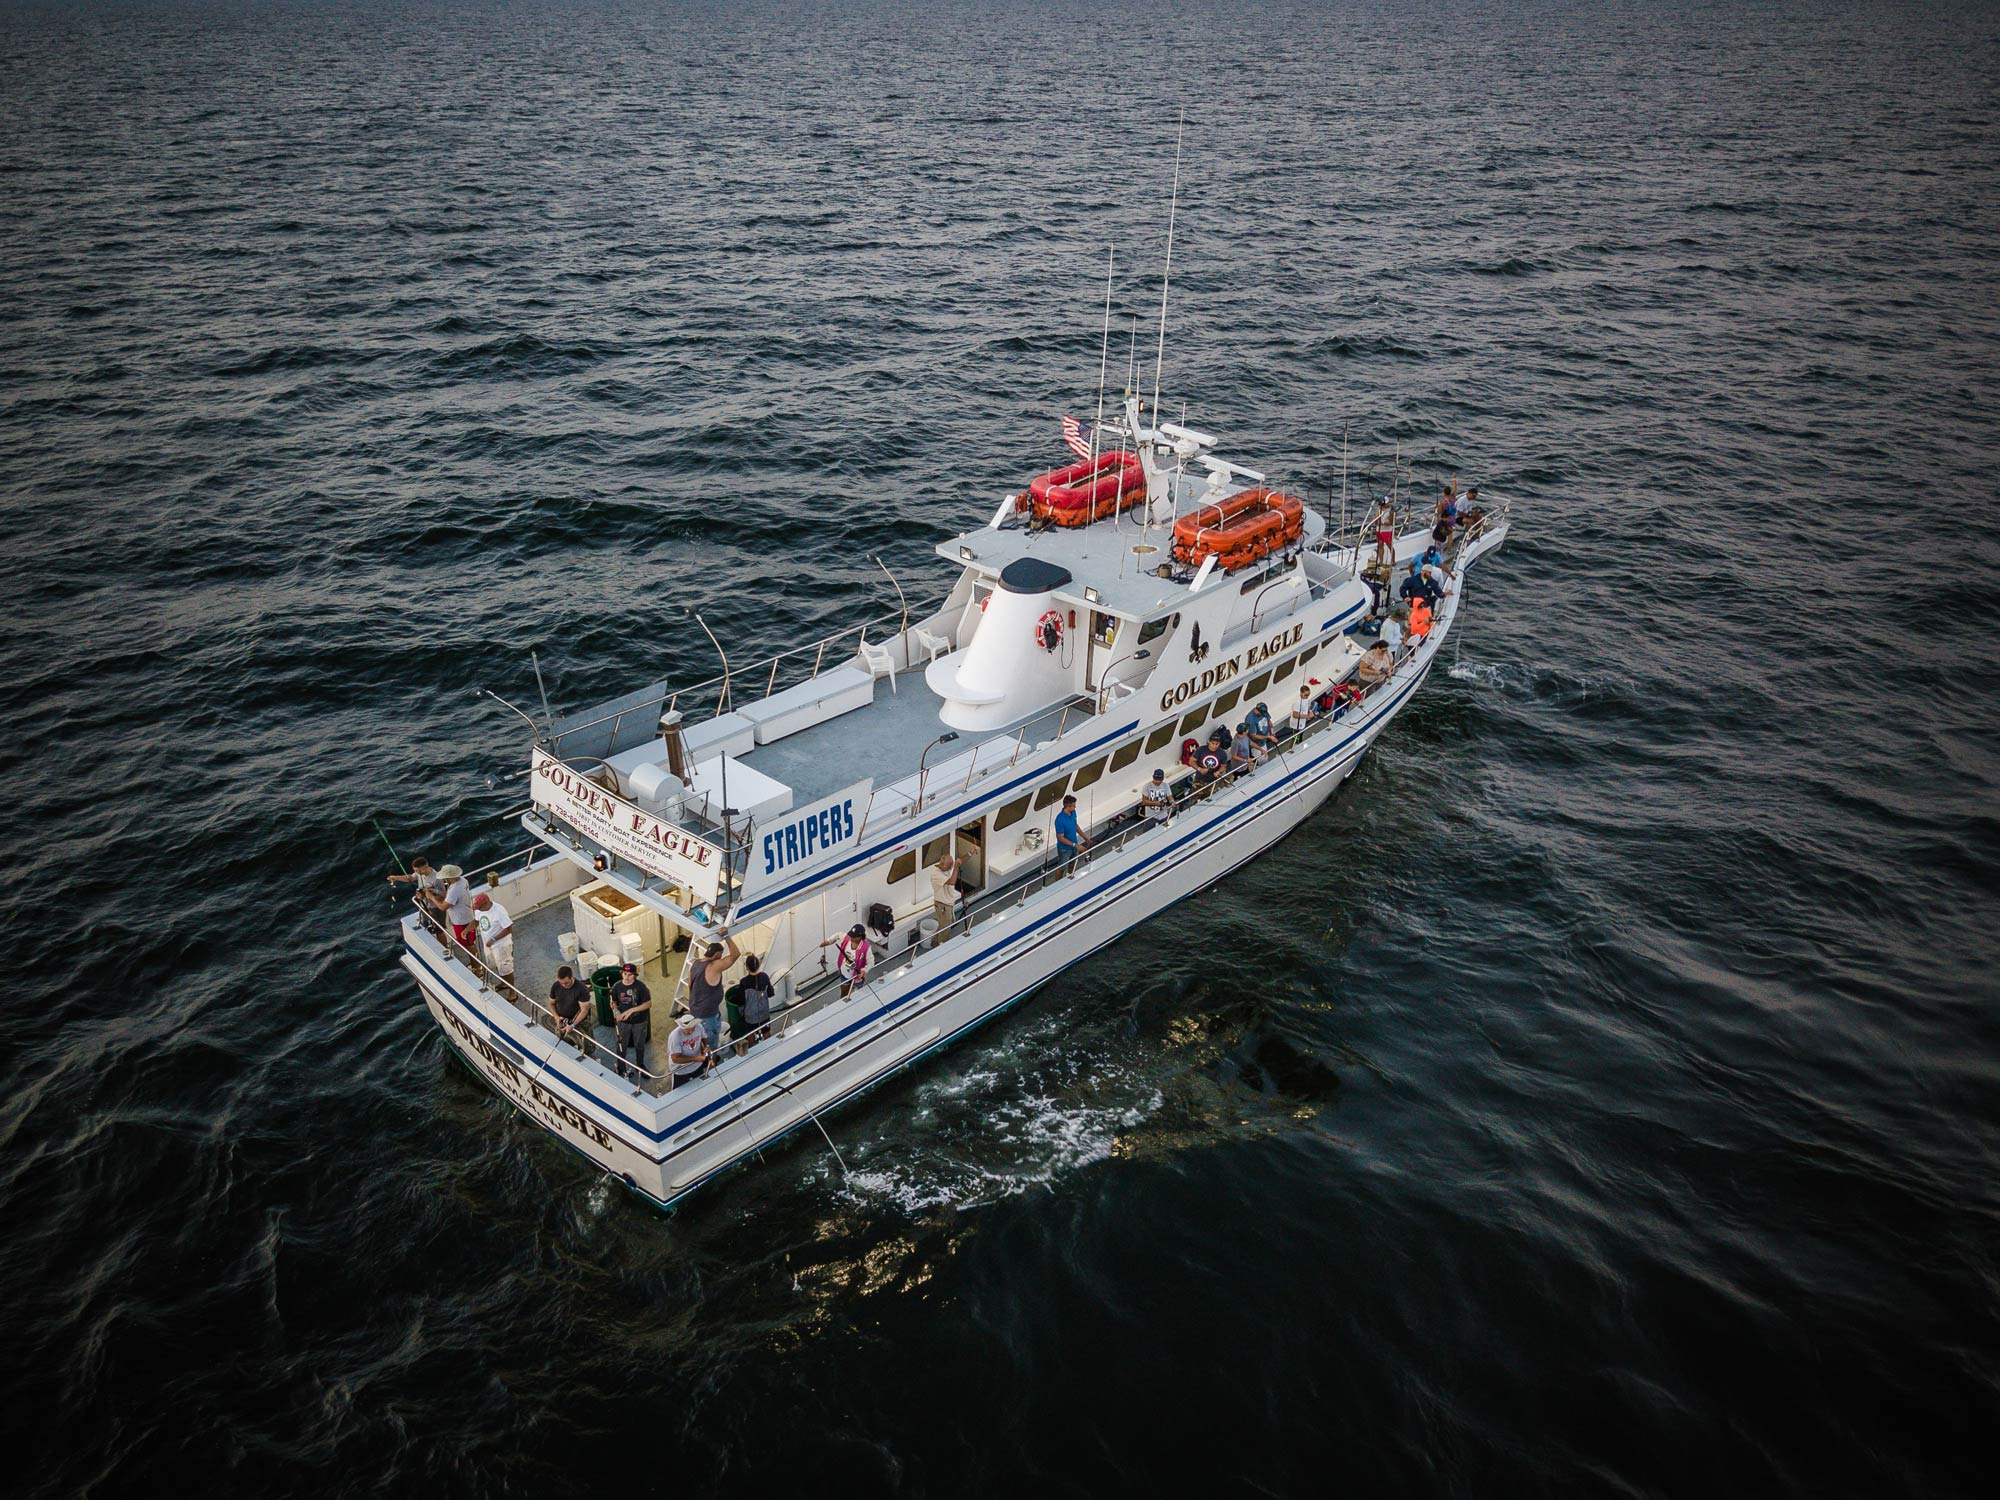 Aerial photo of a party boat taking a large group of anglers out to the fishing grounds